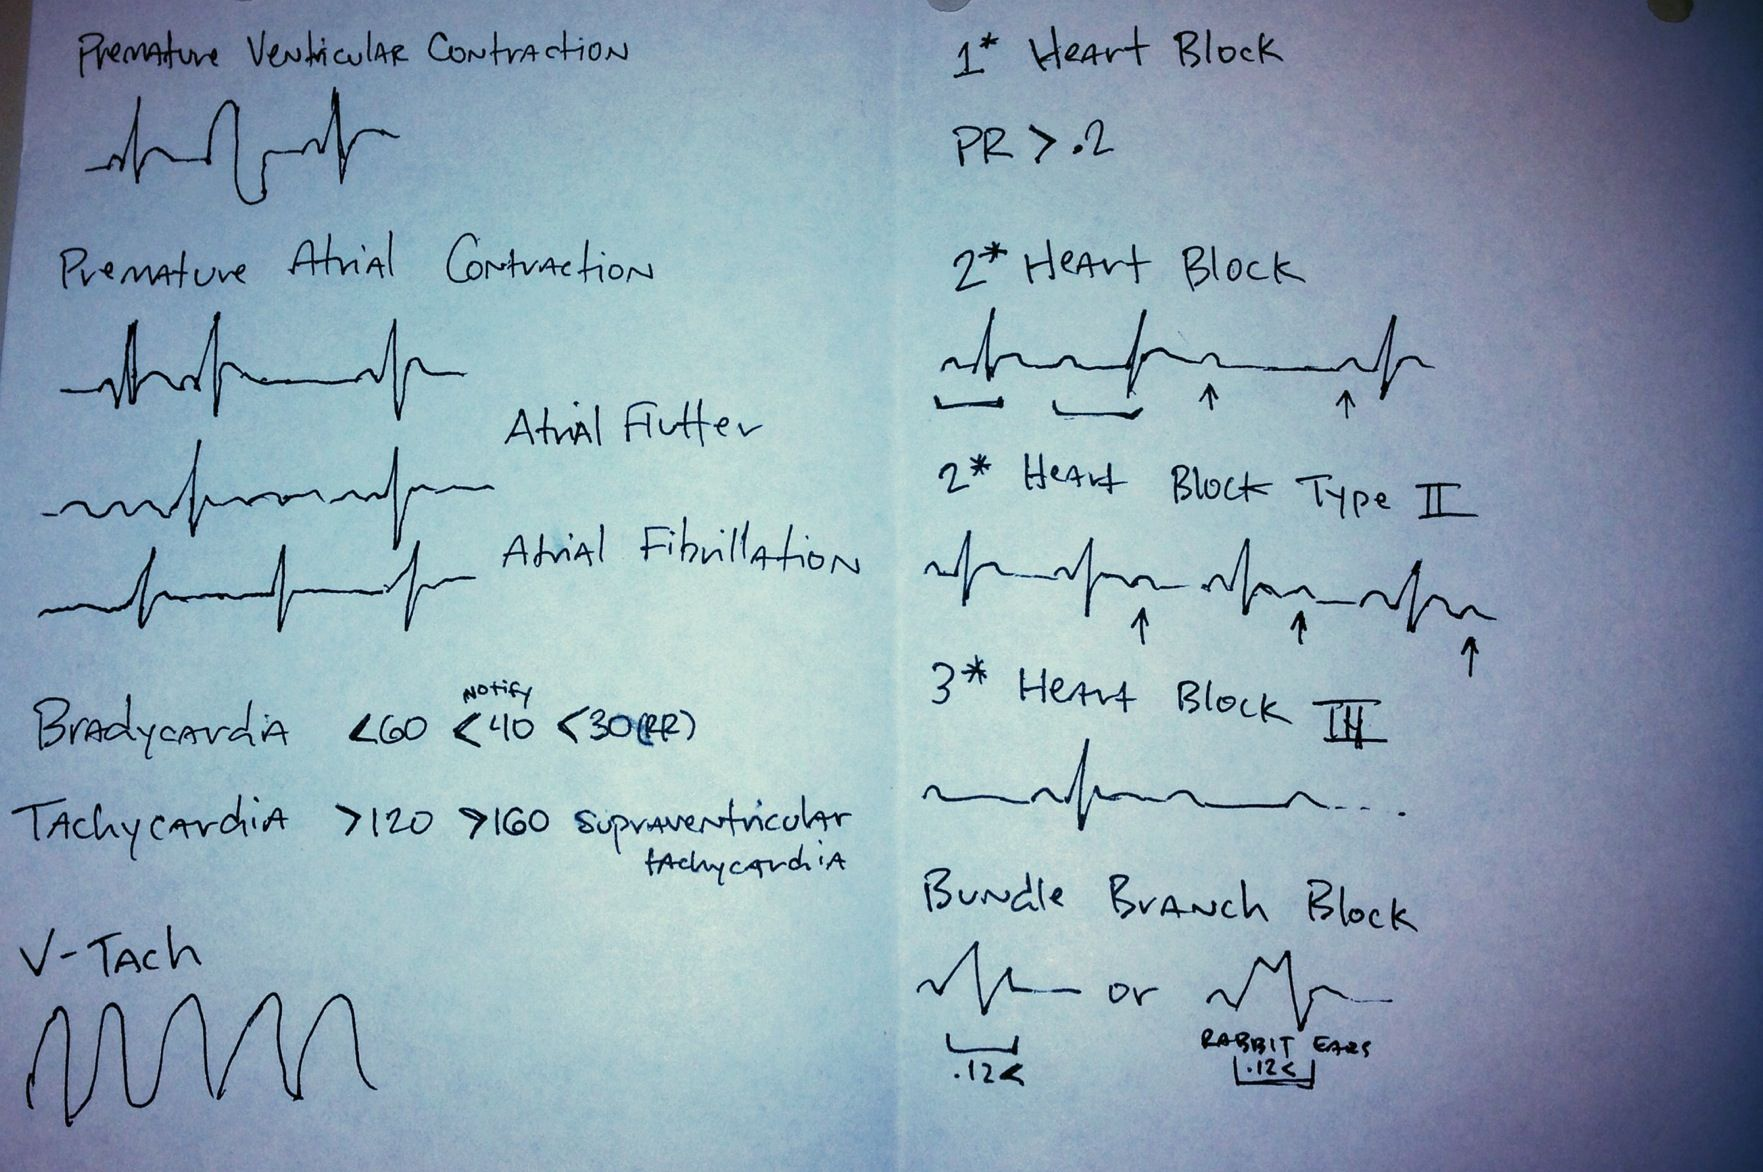 Hand-made telemetry cheat sheet.